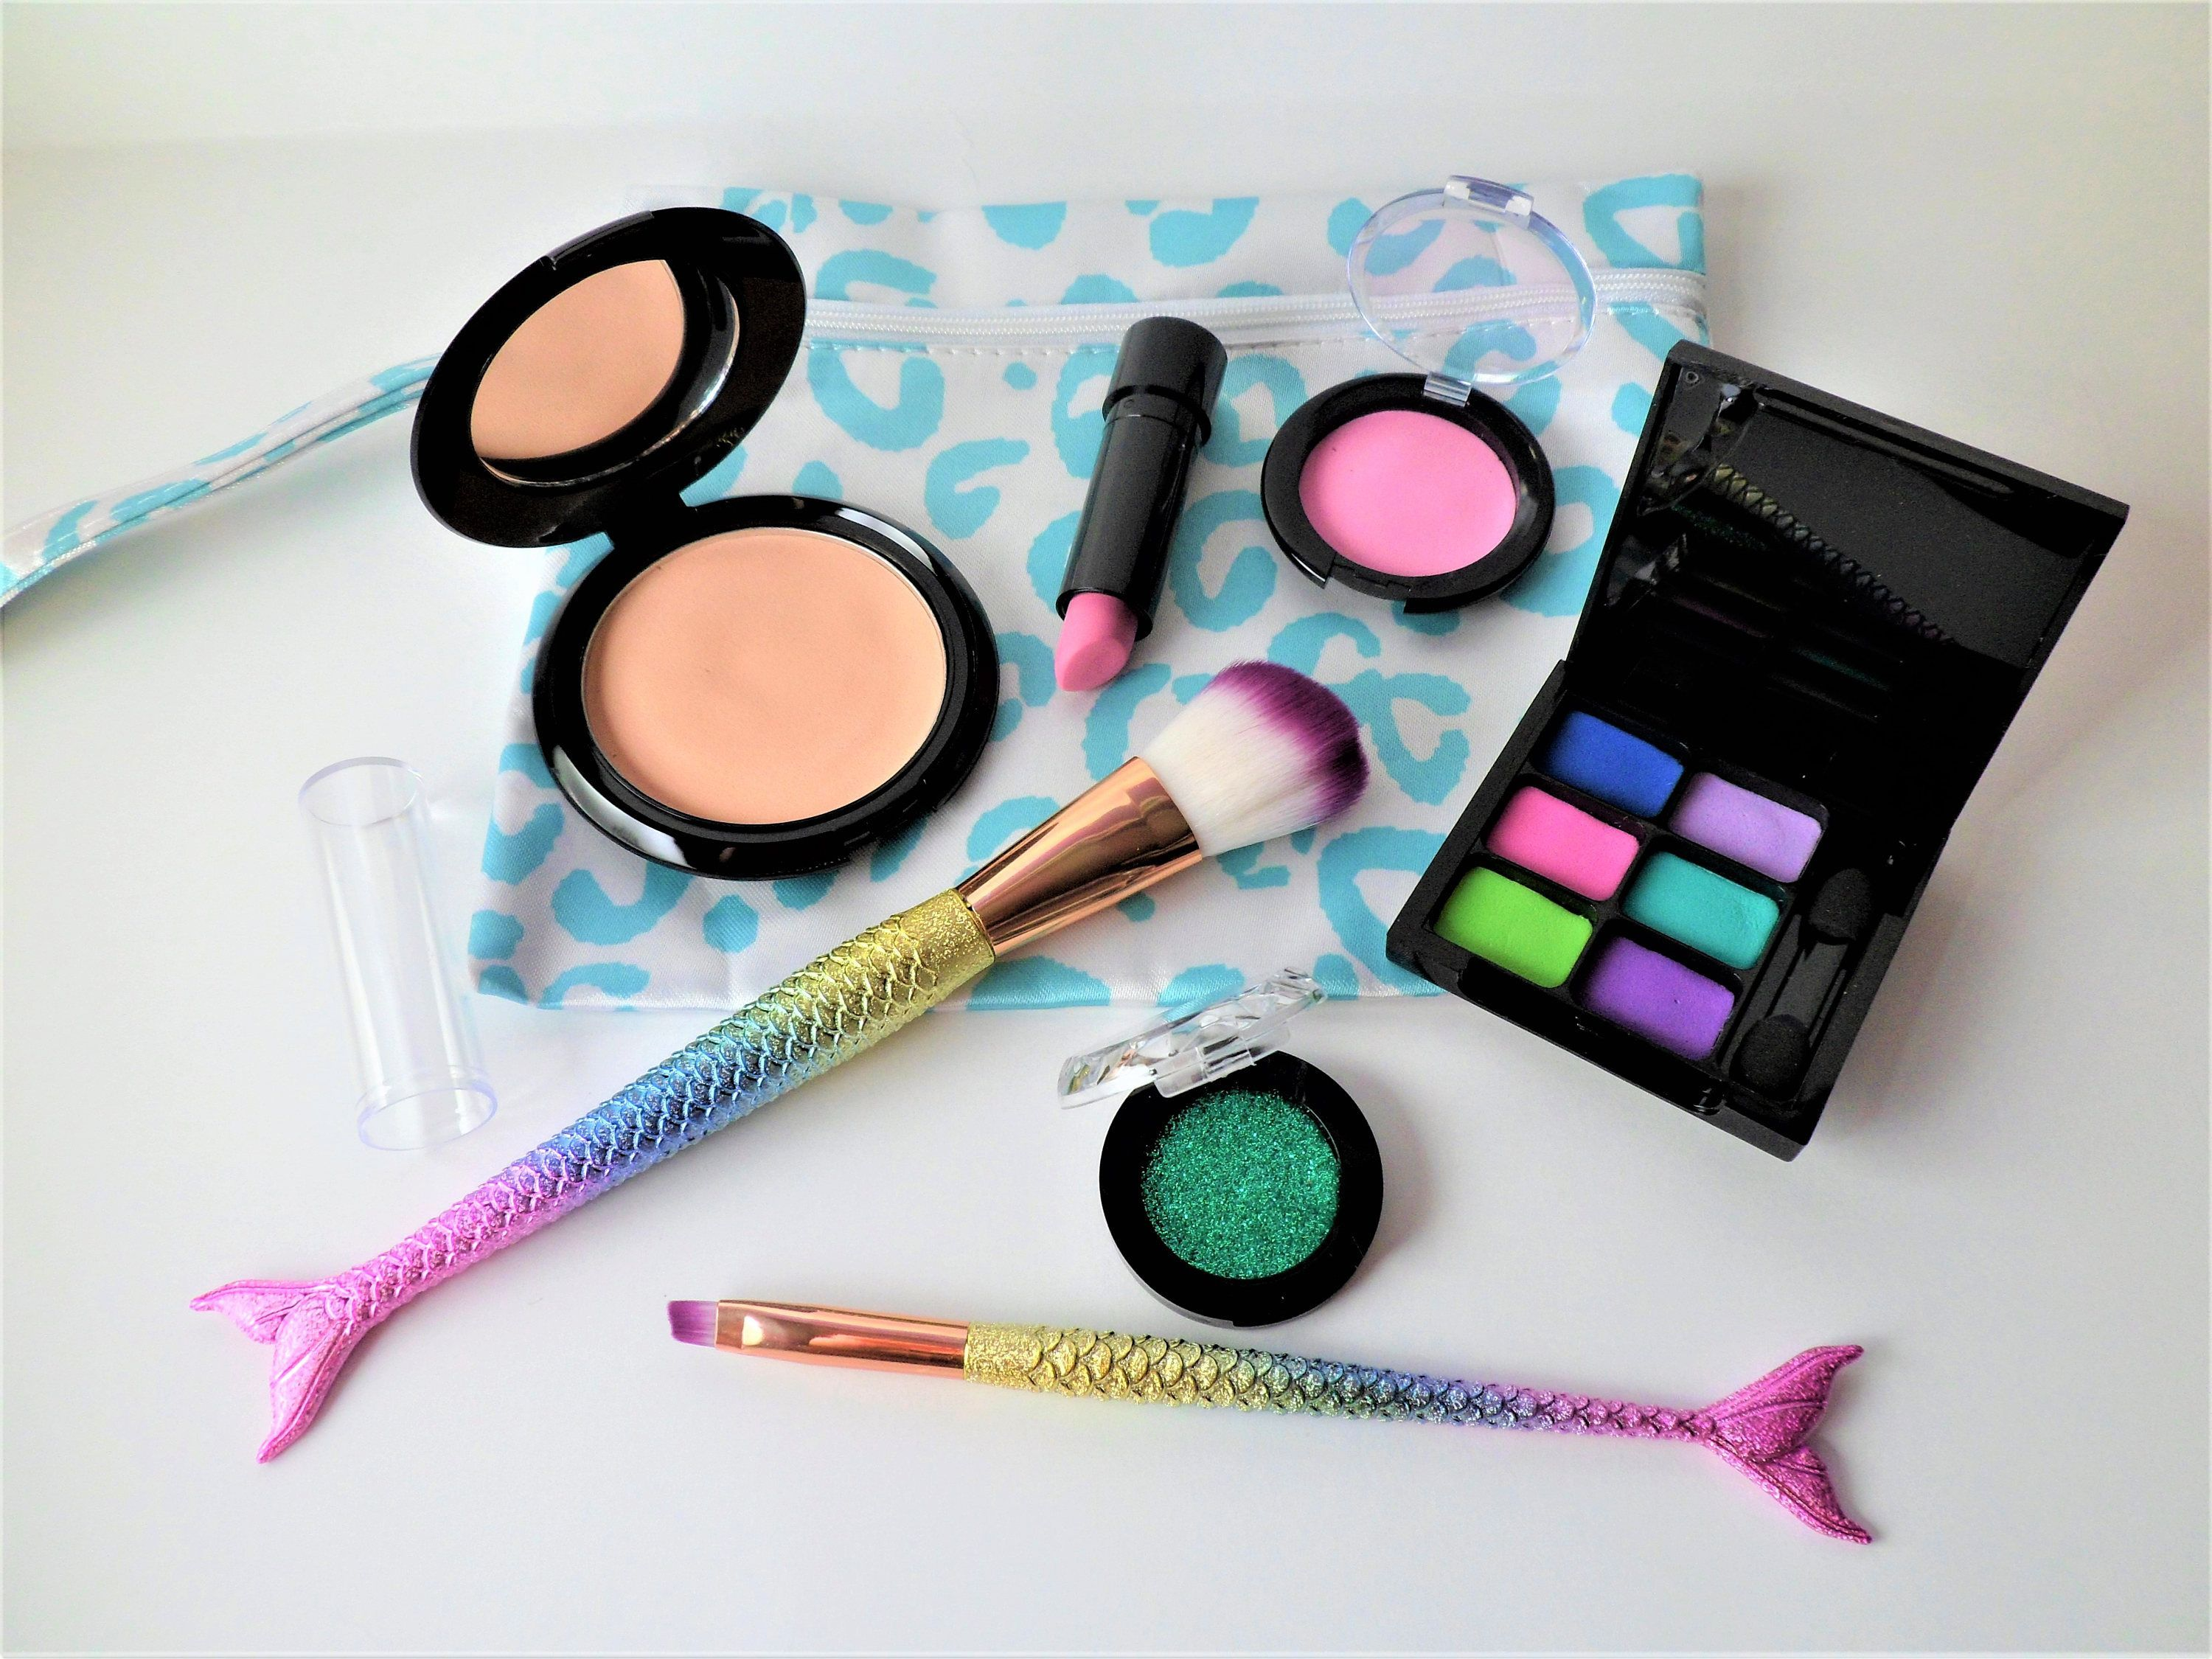 Pin by Wish United on Beauty (With images) Makeup kit